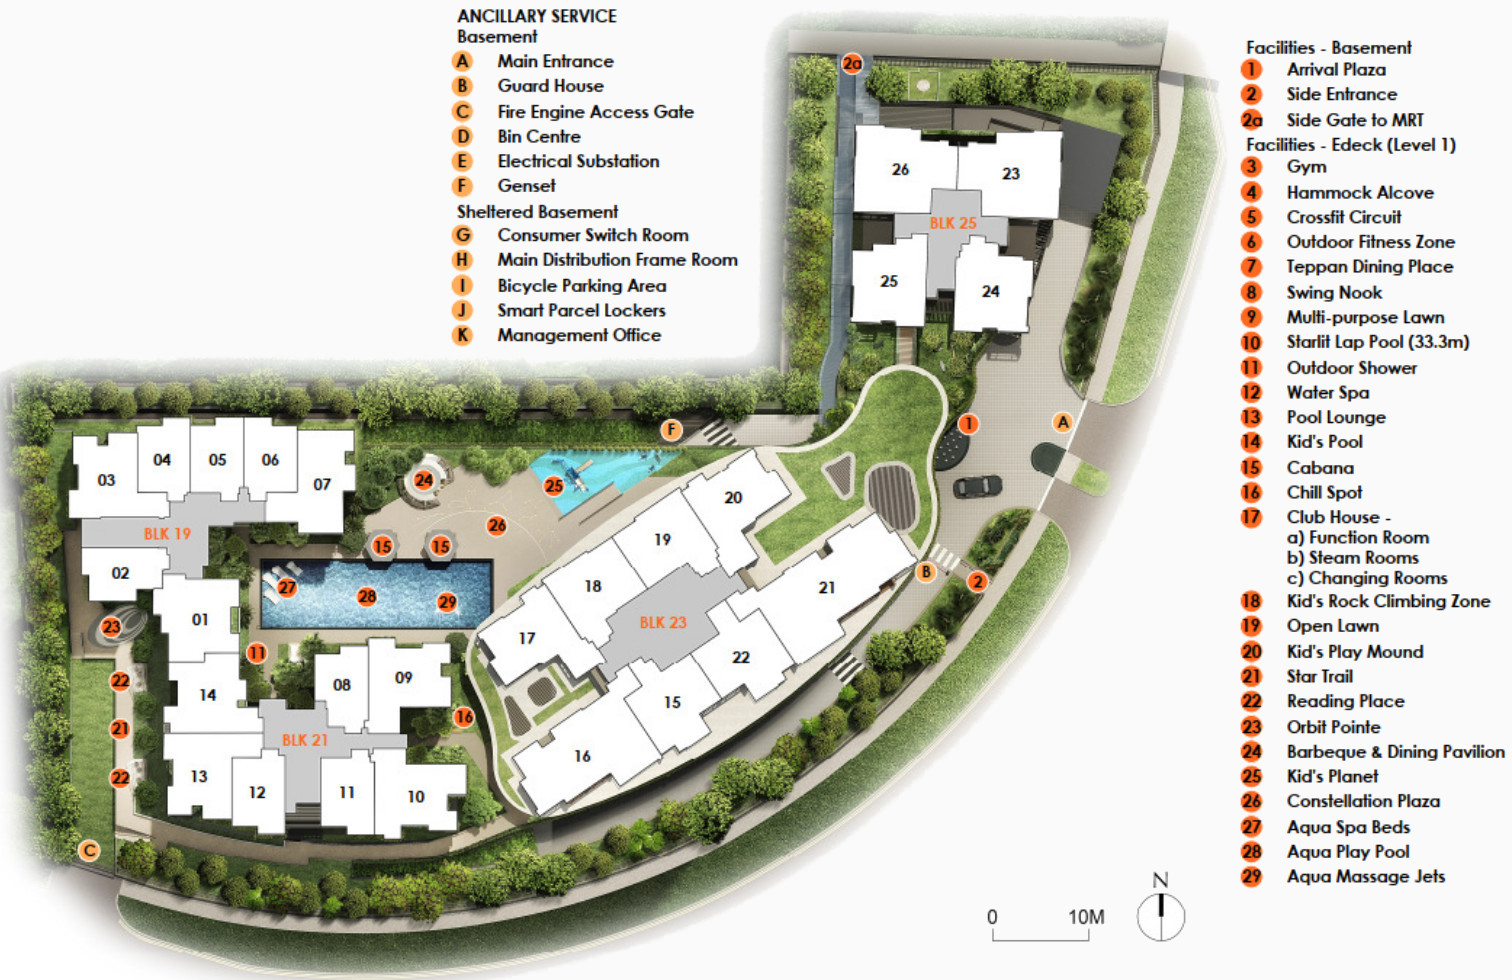 The Antares Site Layout . Amenities at Basement and EDeck